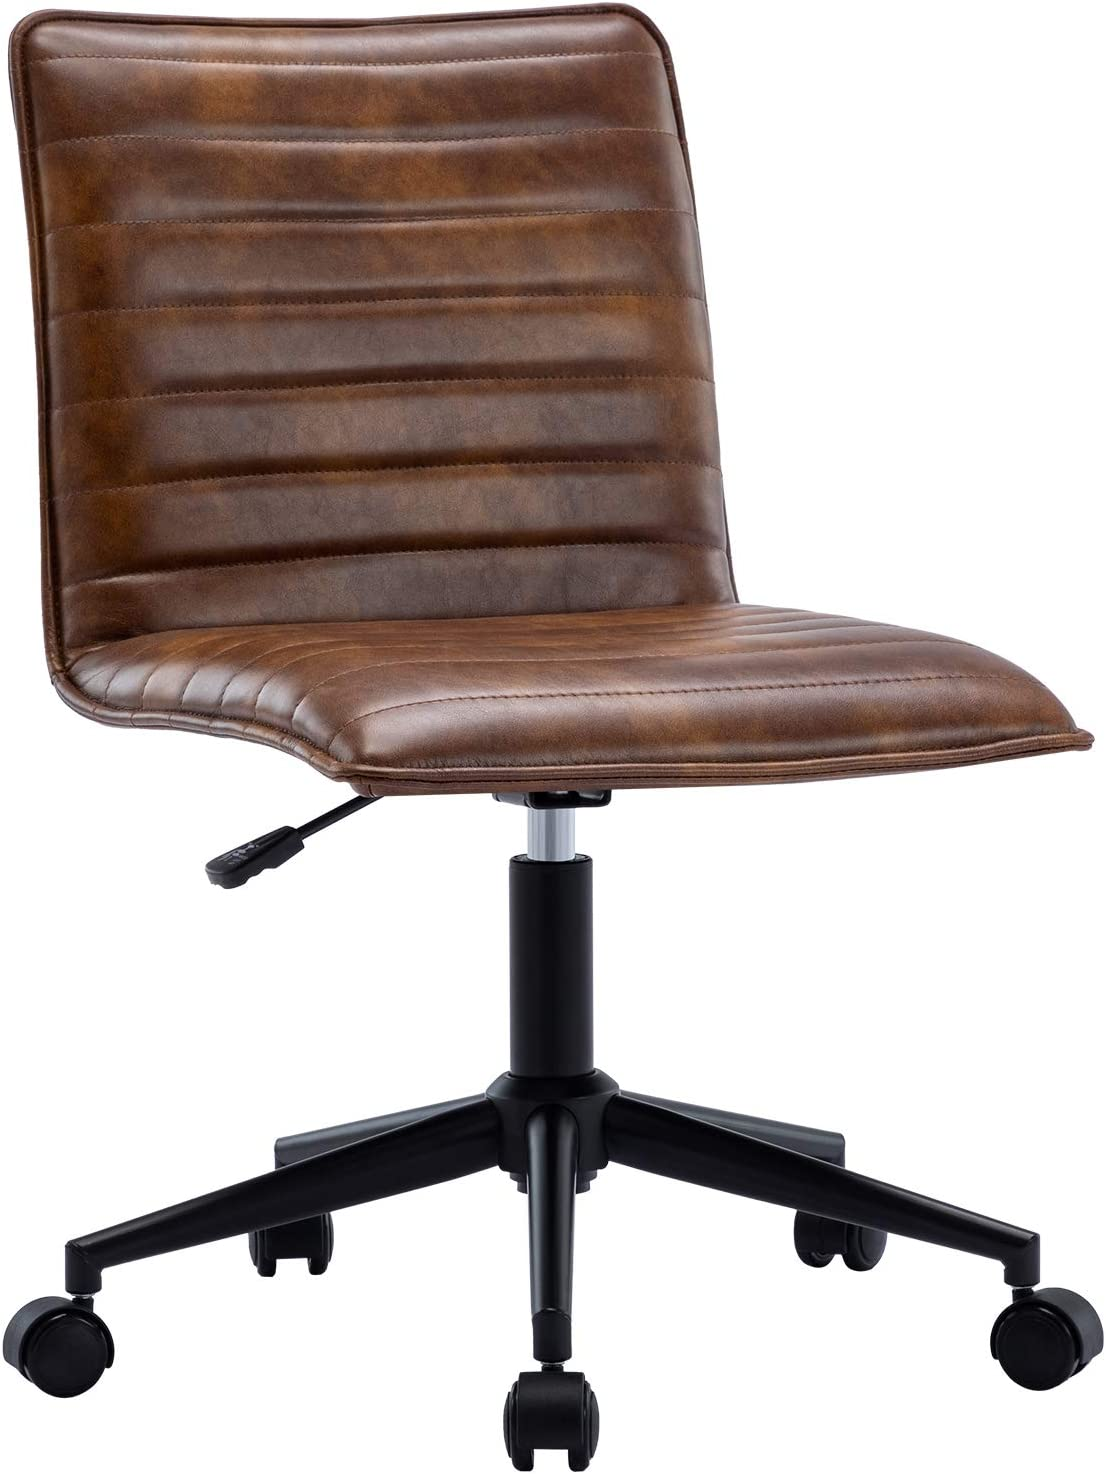 Duhome Columbus Mall Fashionable Leather Office Chair Armless T Swivel Computer Desk